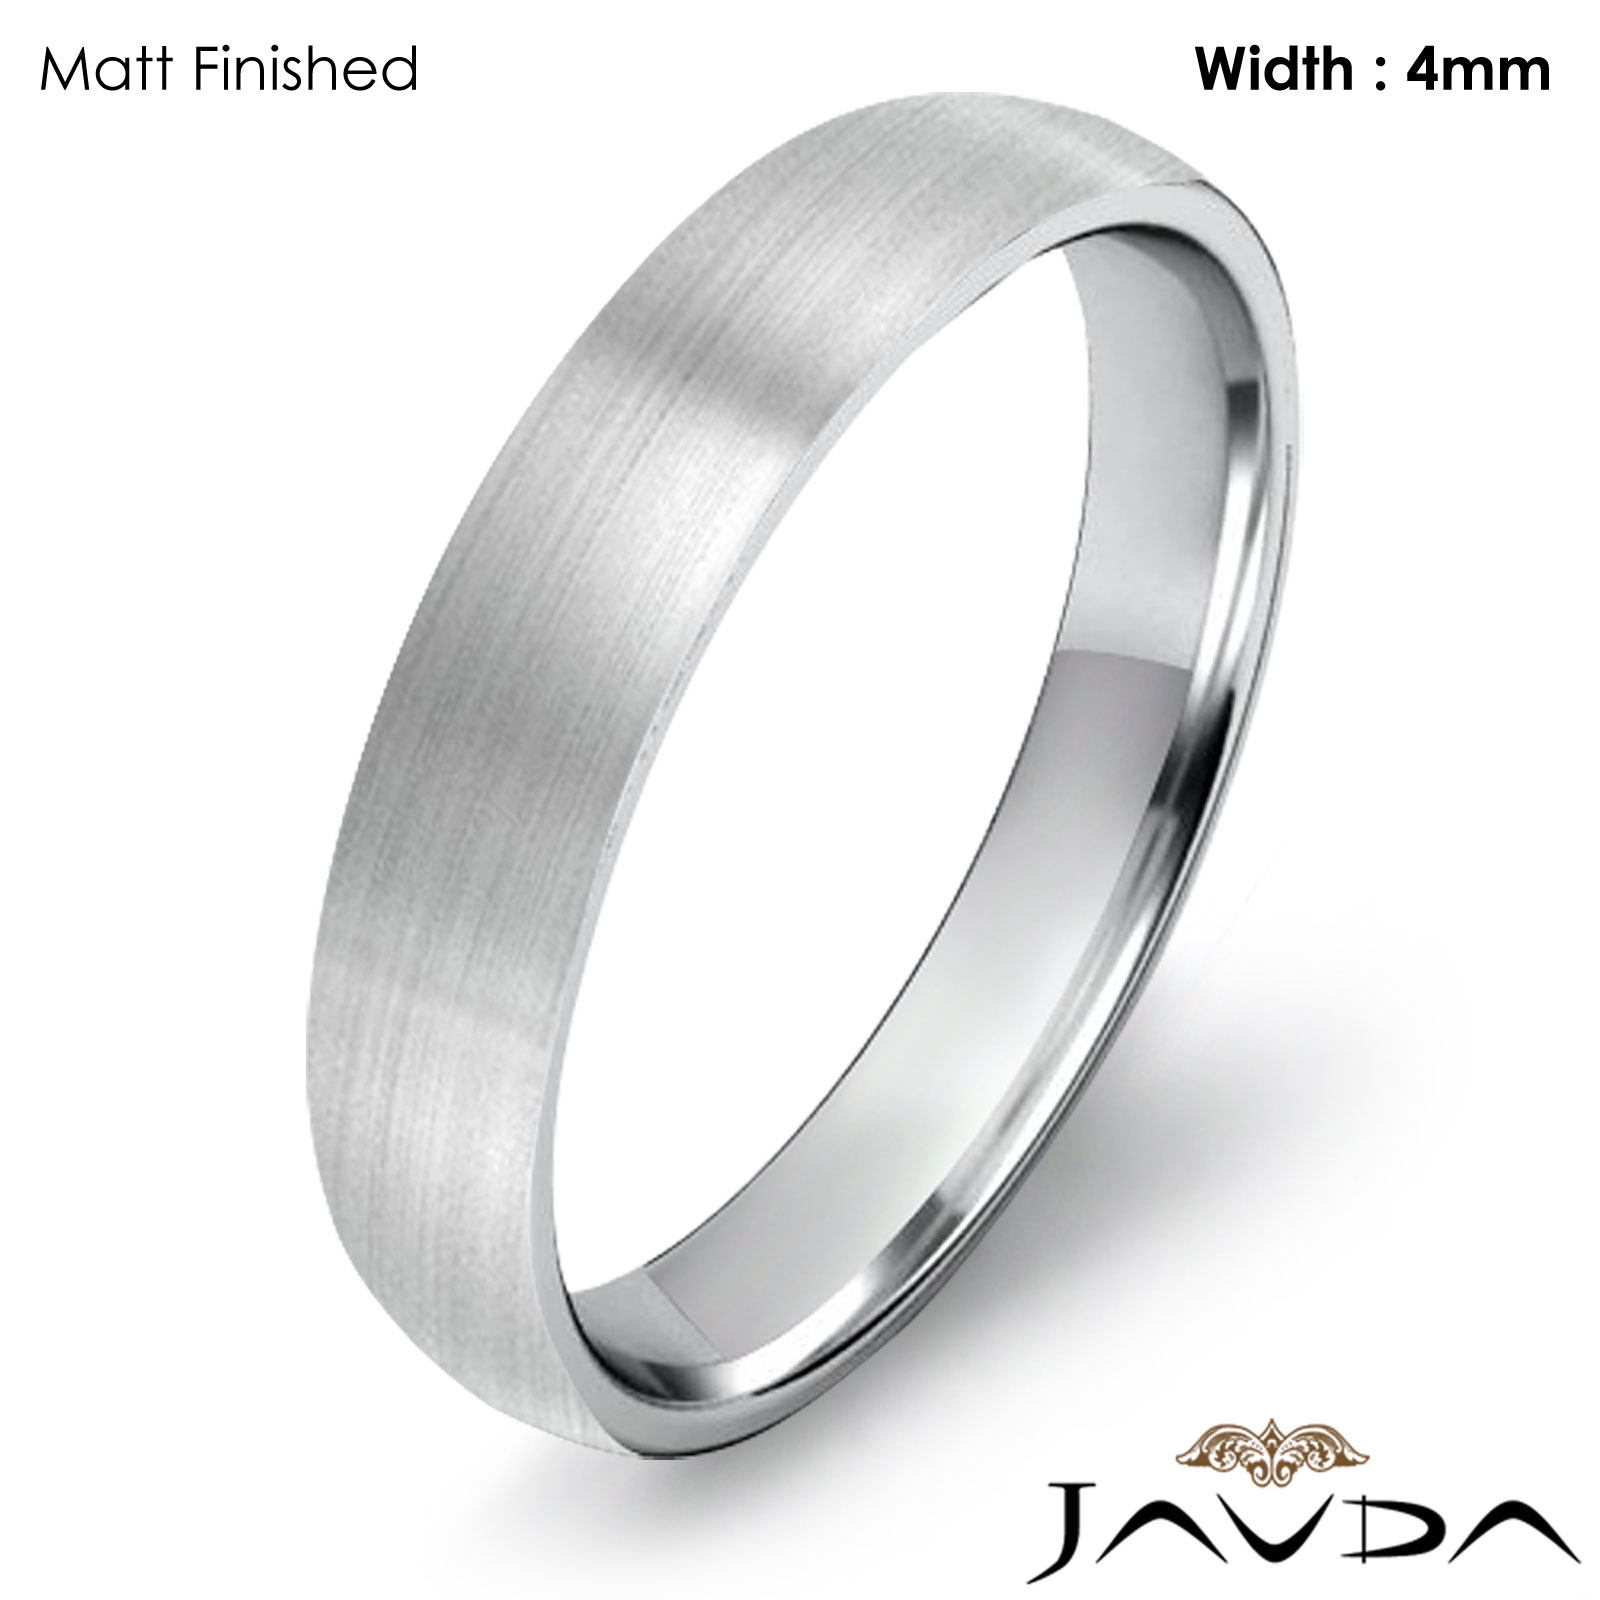 Dome Shaped Bands: 4mm Classic Wedding Ring Platinum Dome Shape Light Comfort